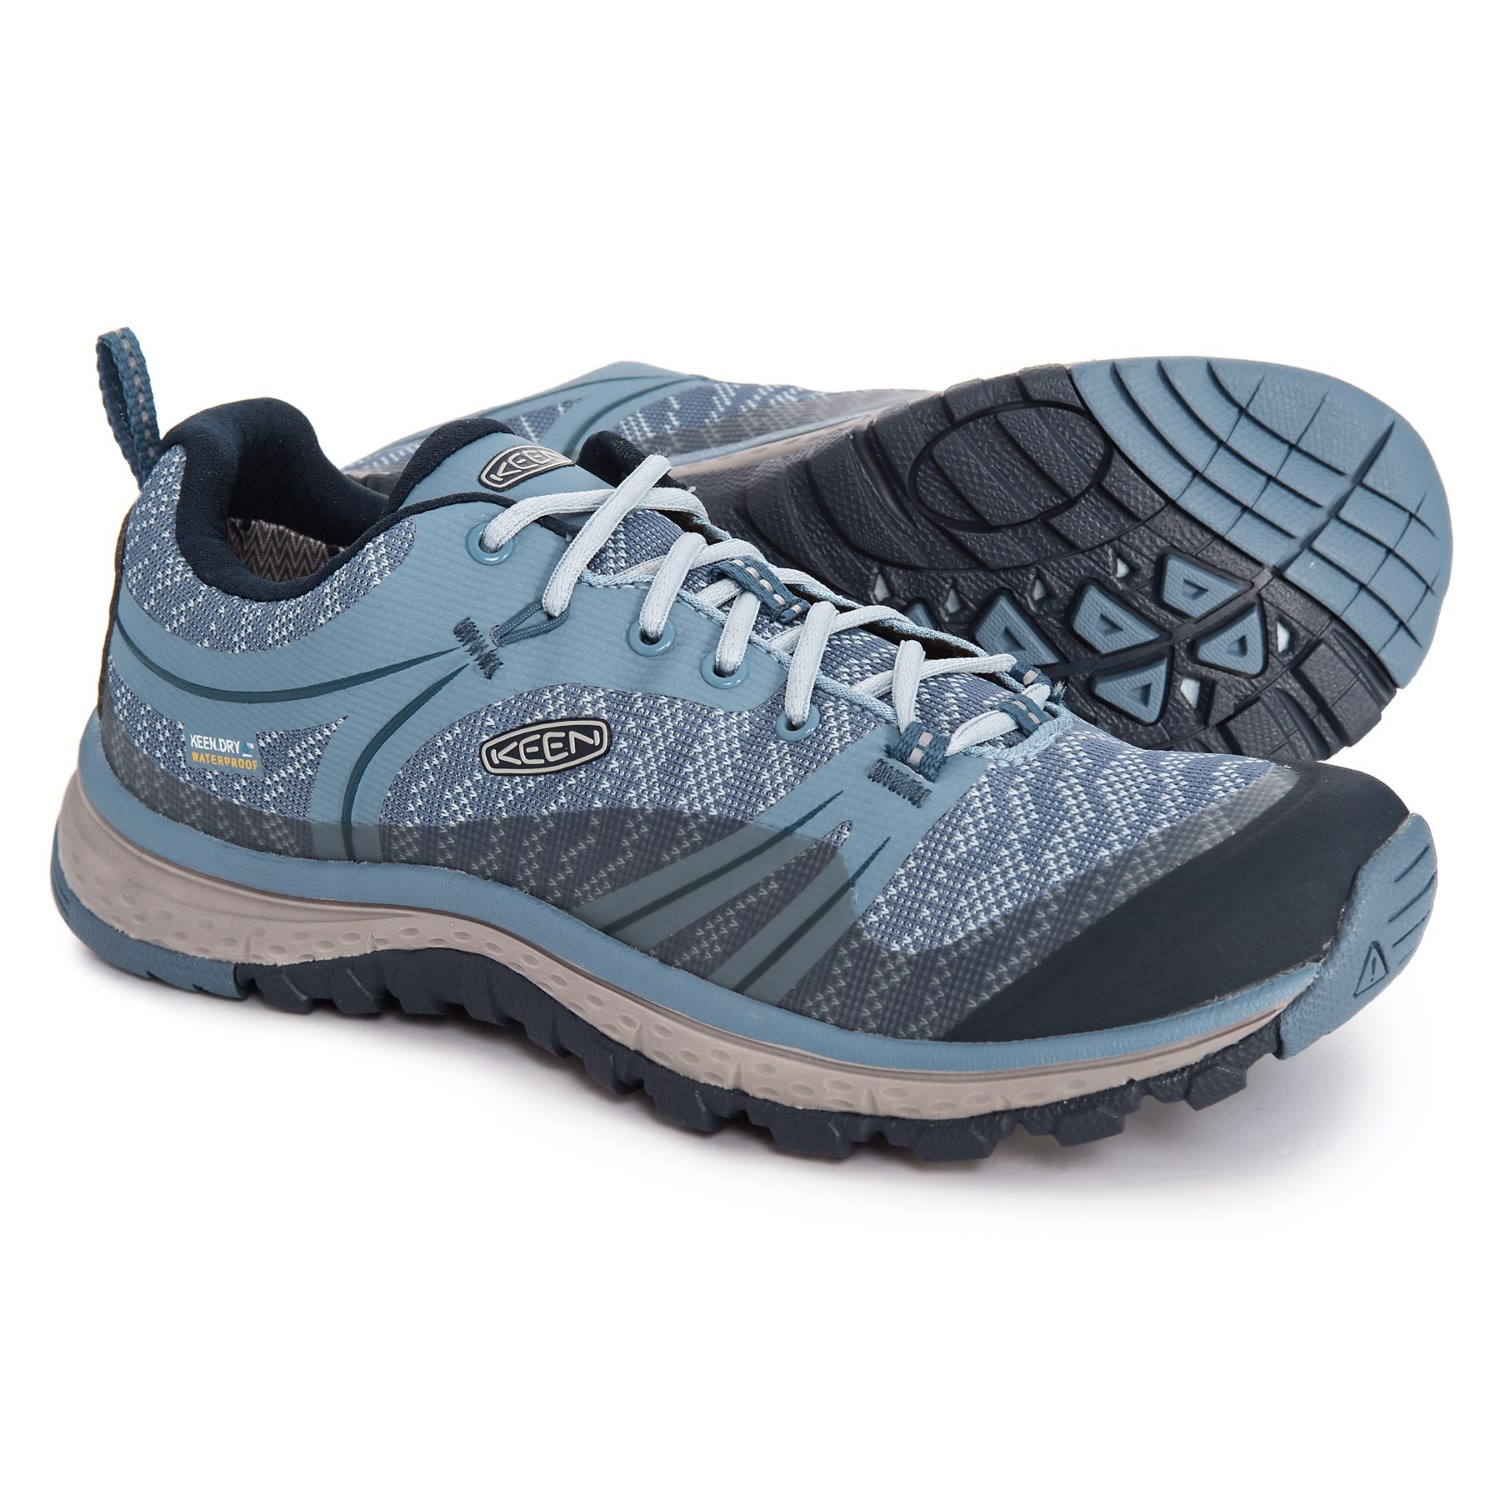 35139ecd767 Keen Terradora Hiking Shoes - Waterproof (For Women)